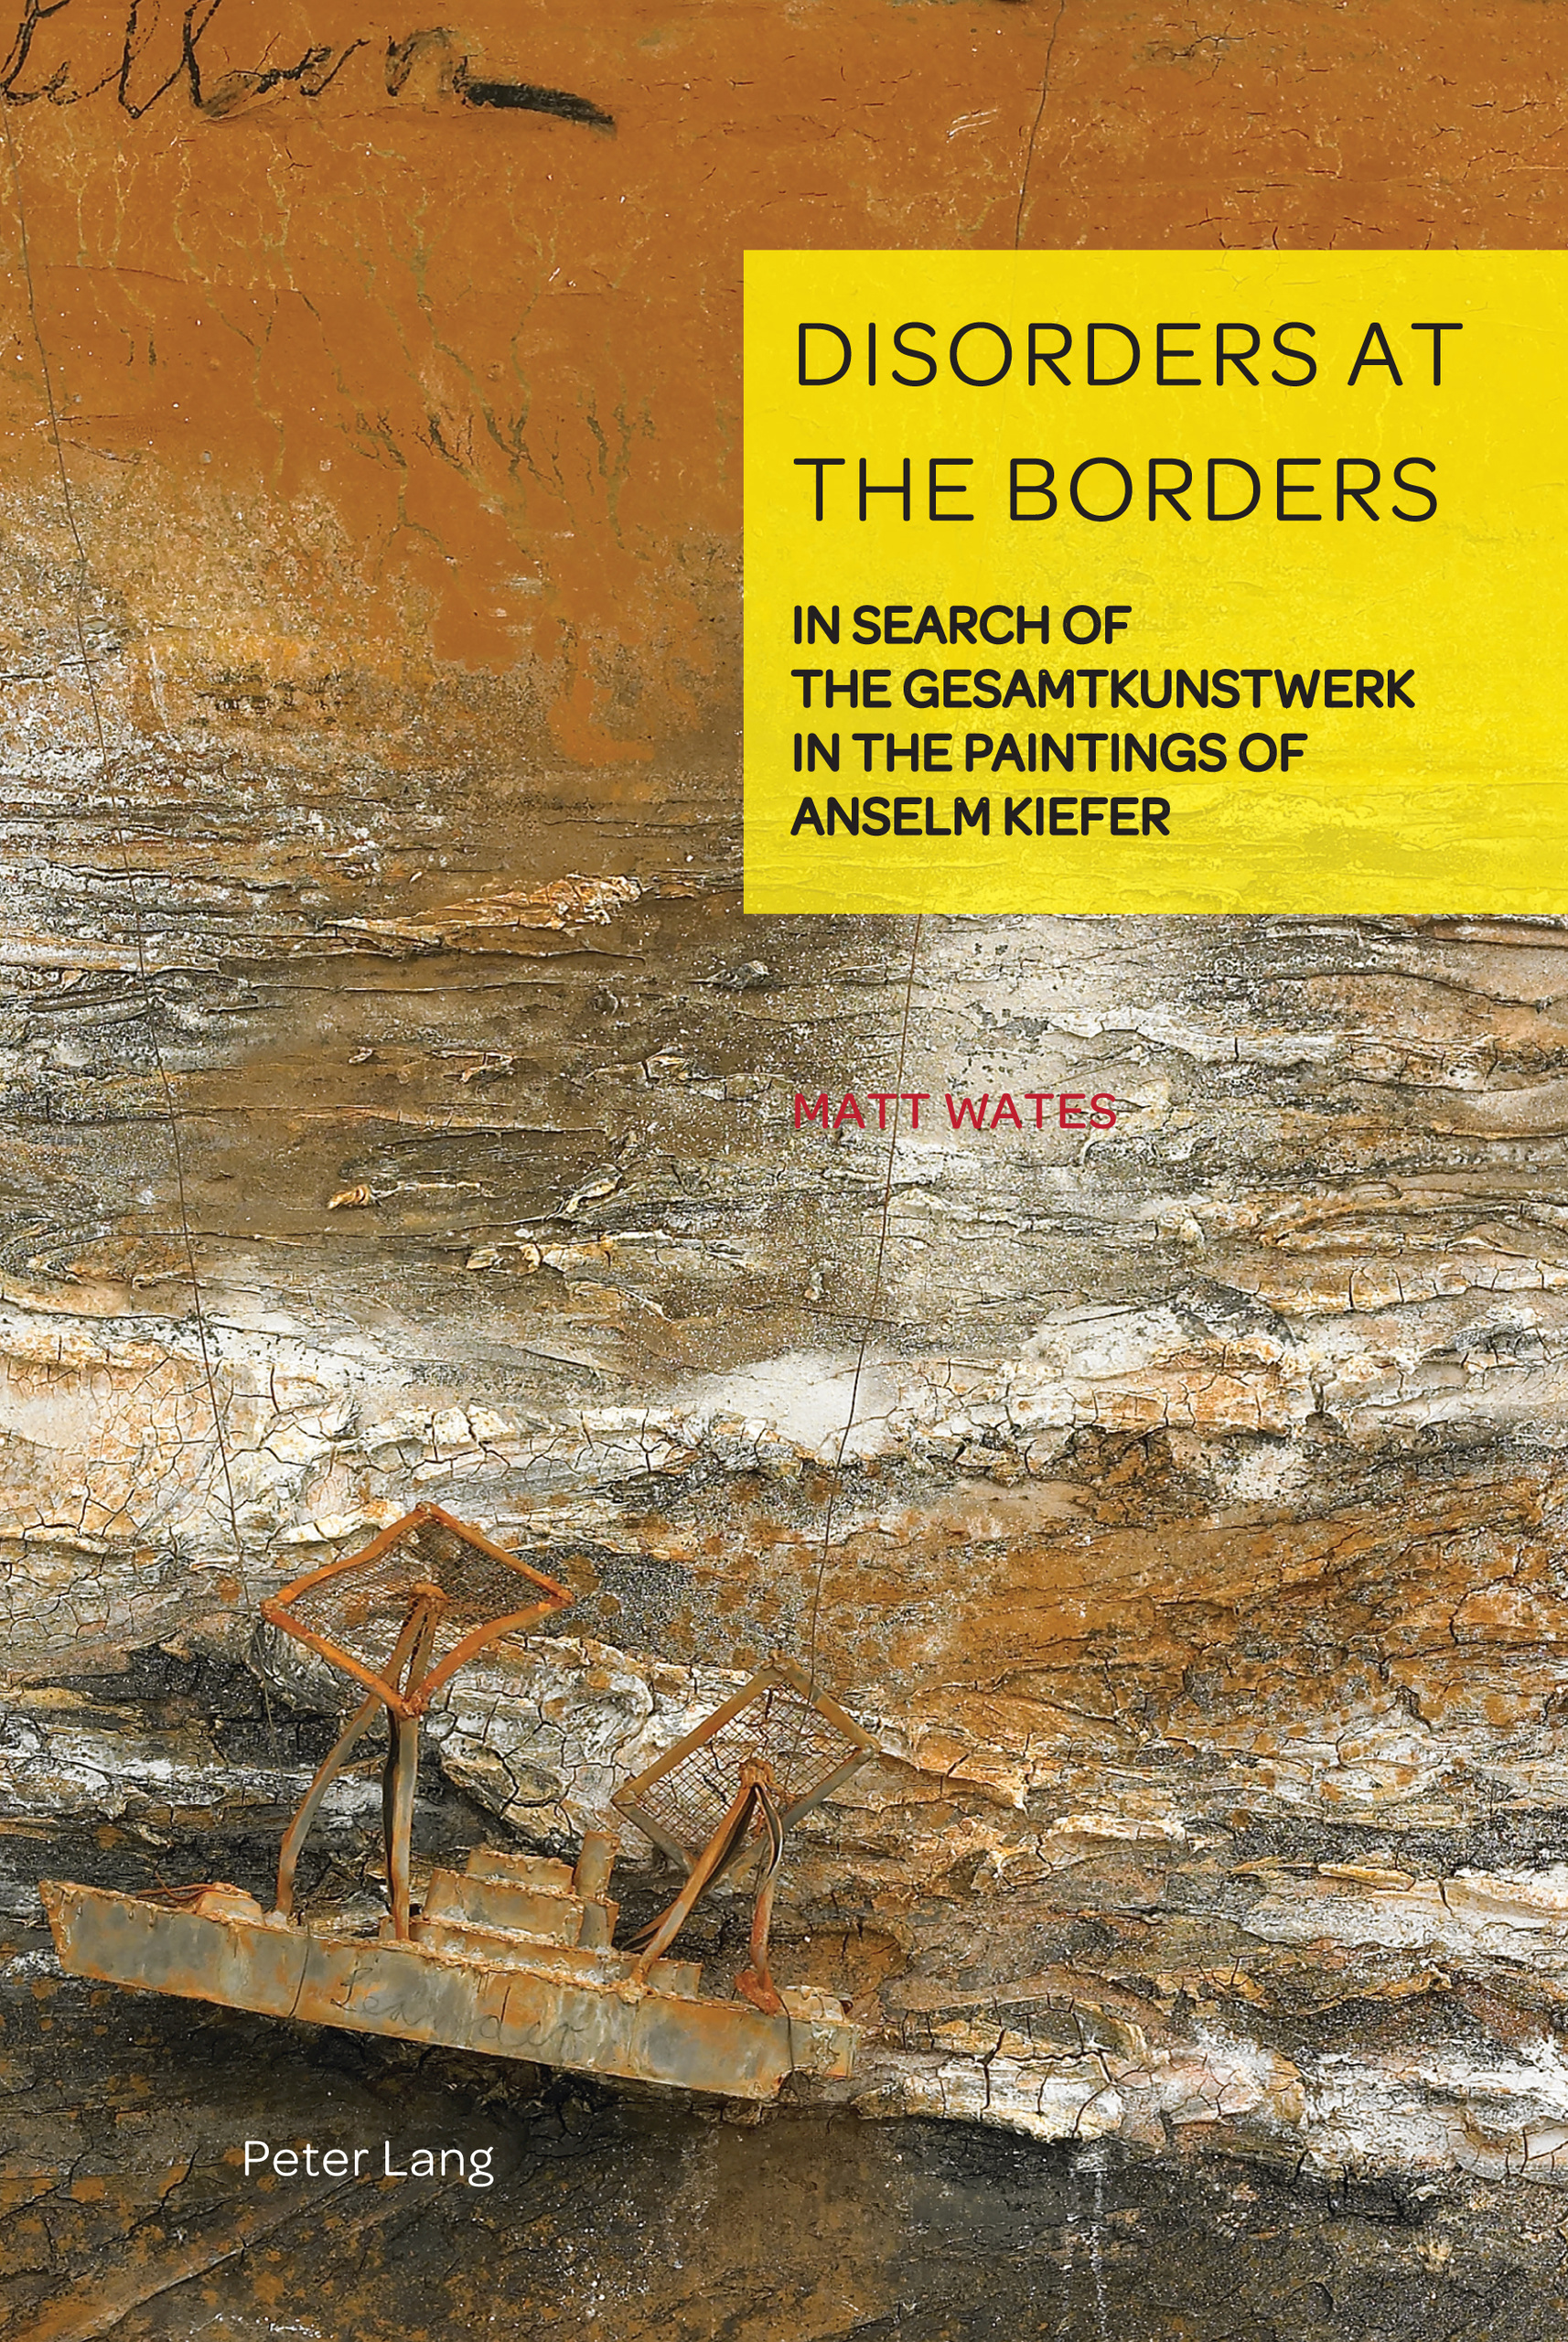 Title: Disorders at the Borders